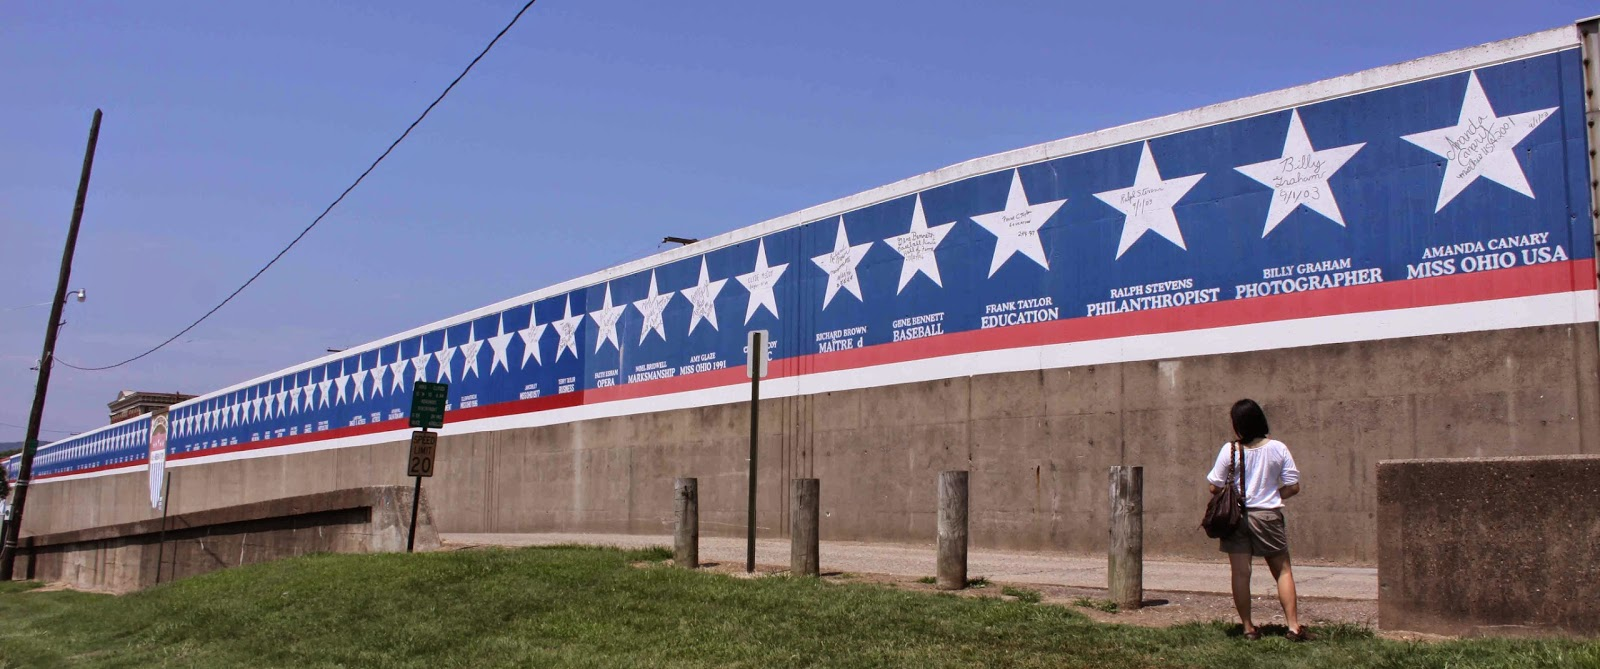 The River Side Of The Portsmouth Floodwall Features Local Stars. Photo  Credit: Trudy E. Bell, 2010 Part 47